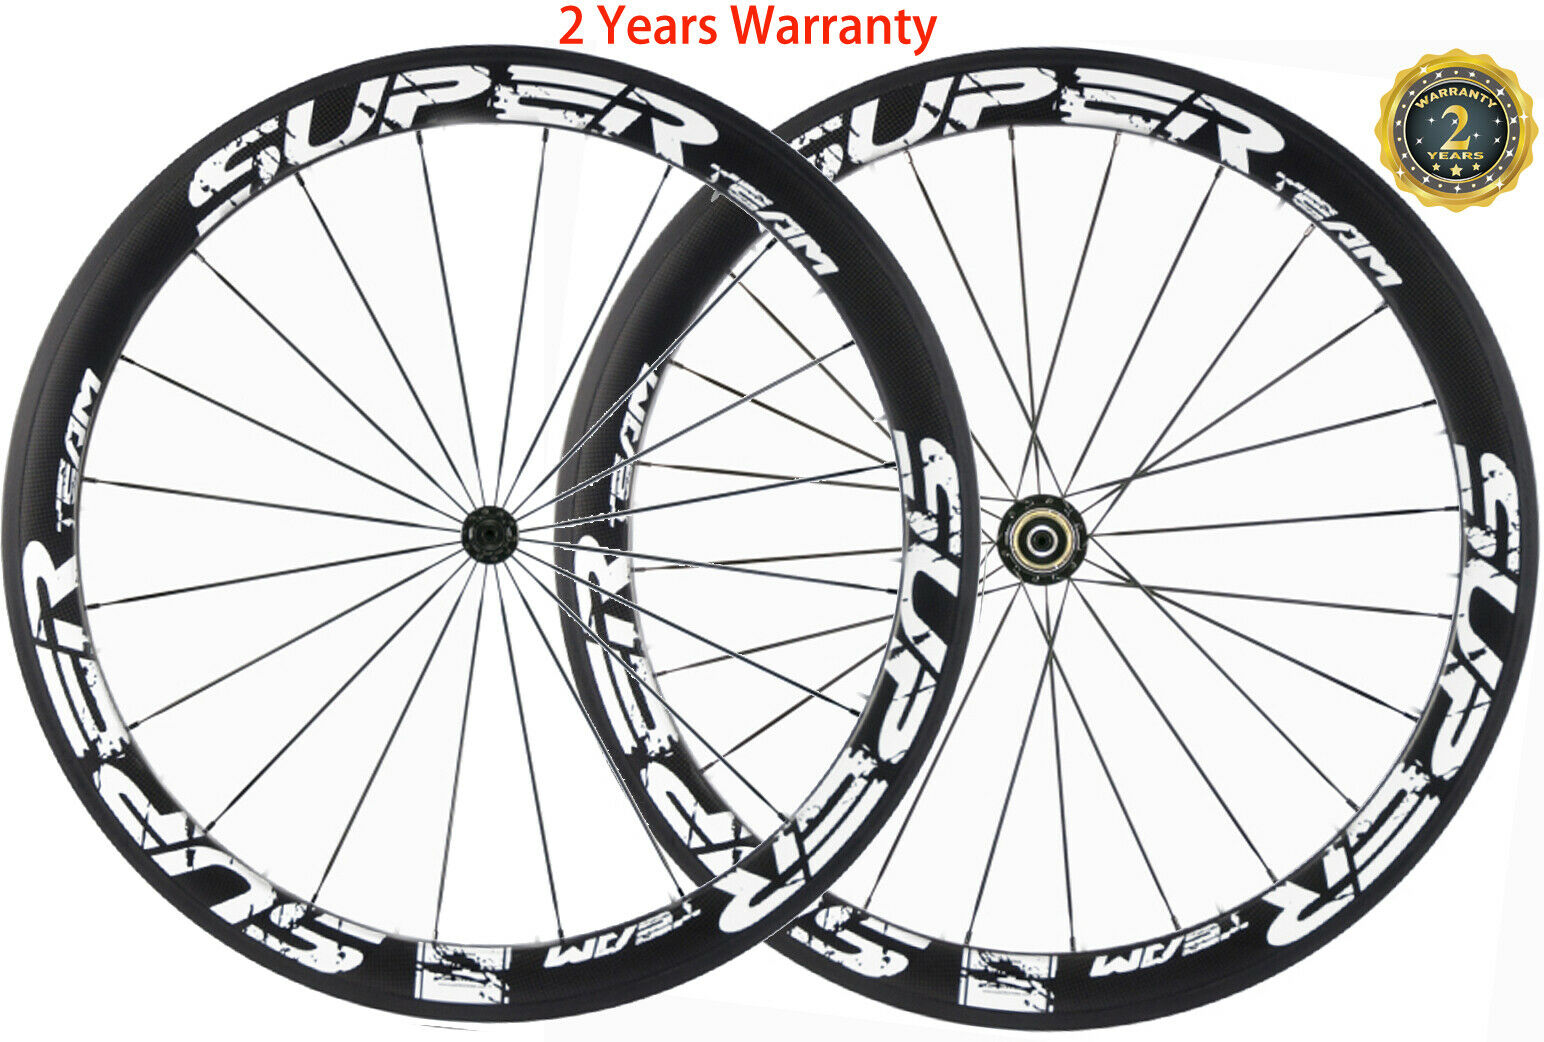 50mm Carbon Wheels Road Bike Cycle Wheelset 700C UD 3K Wheelset Shimano Campy